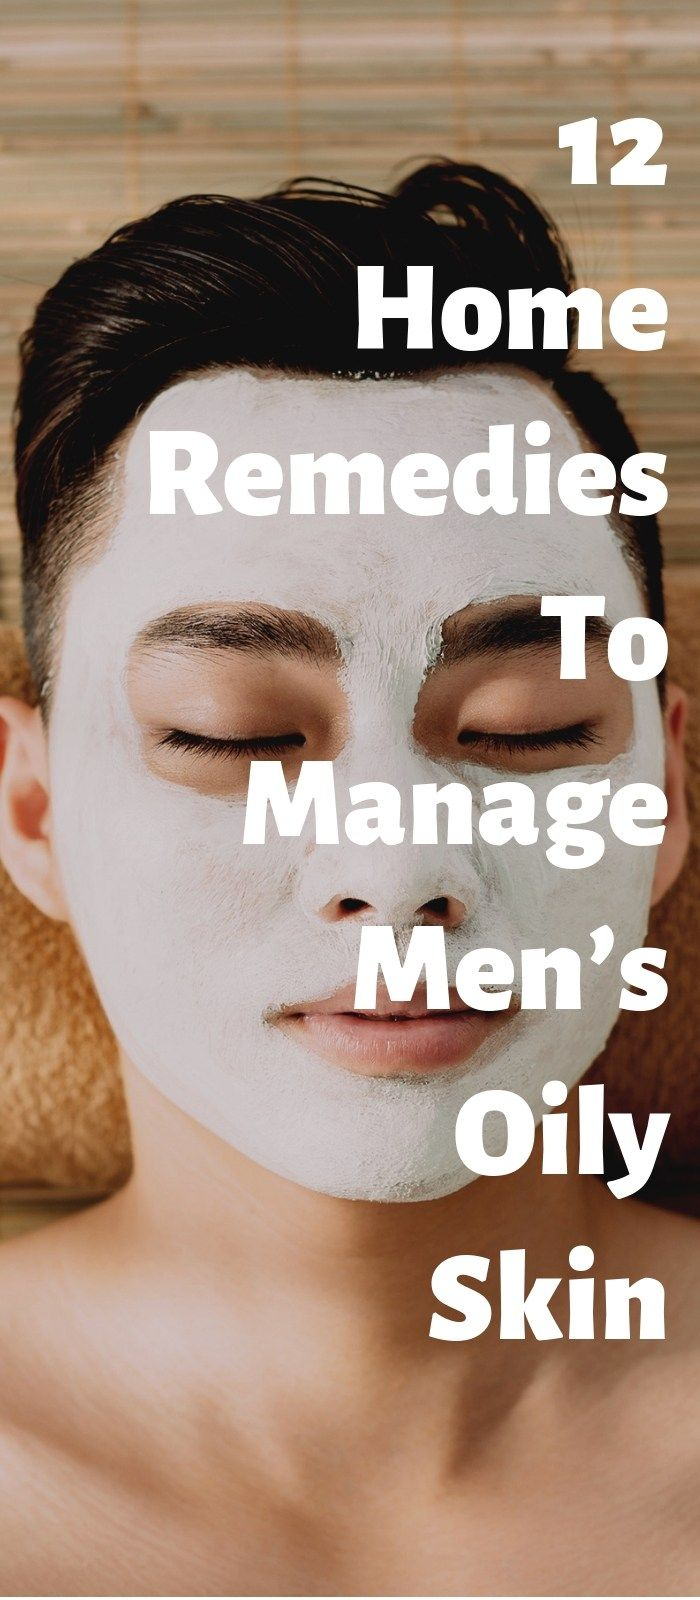 12 Home Remedies To Manage Men S Oily Skin Easily Men Skin Care Routine Skin Oily Skin Men